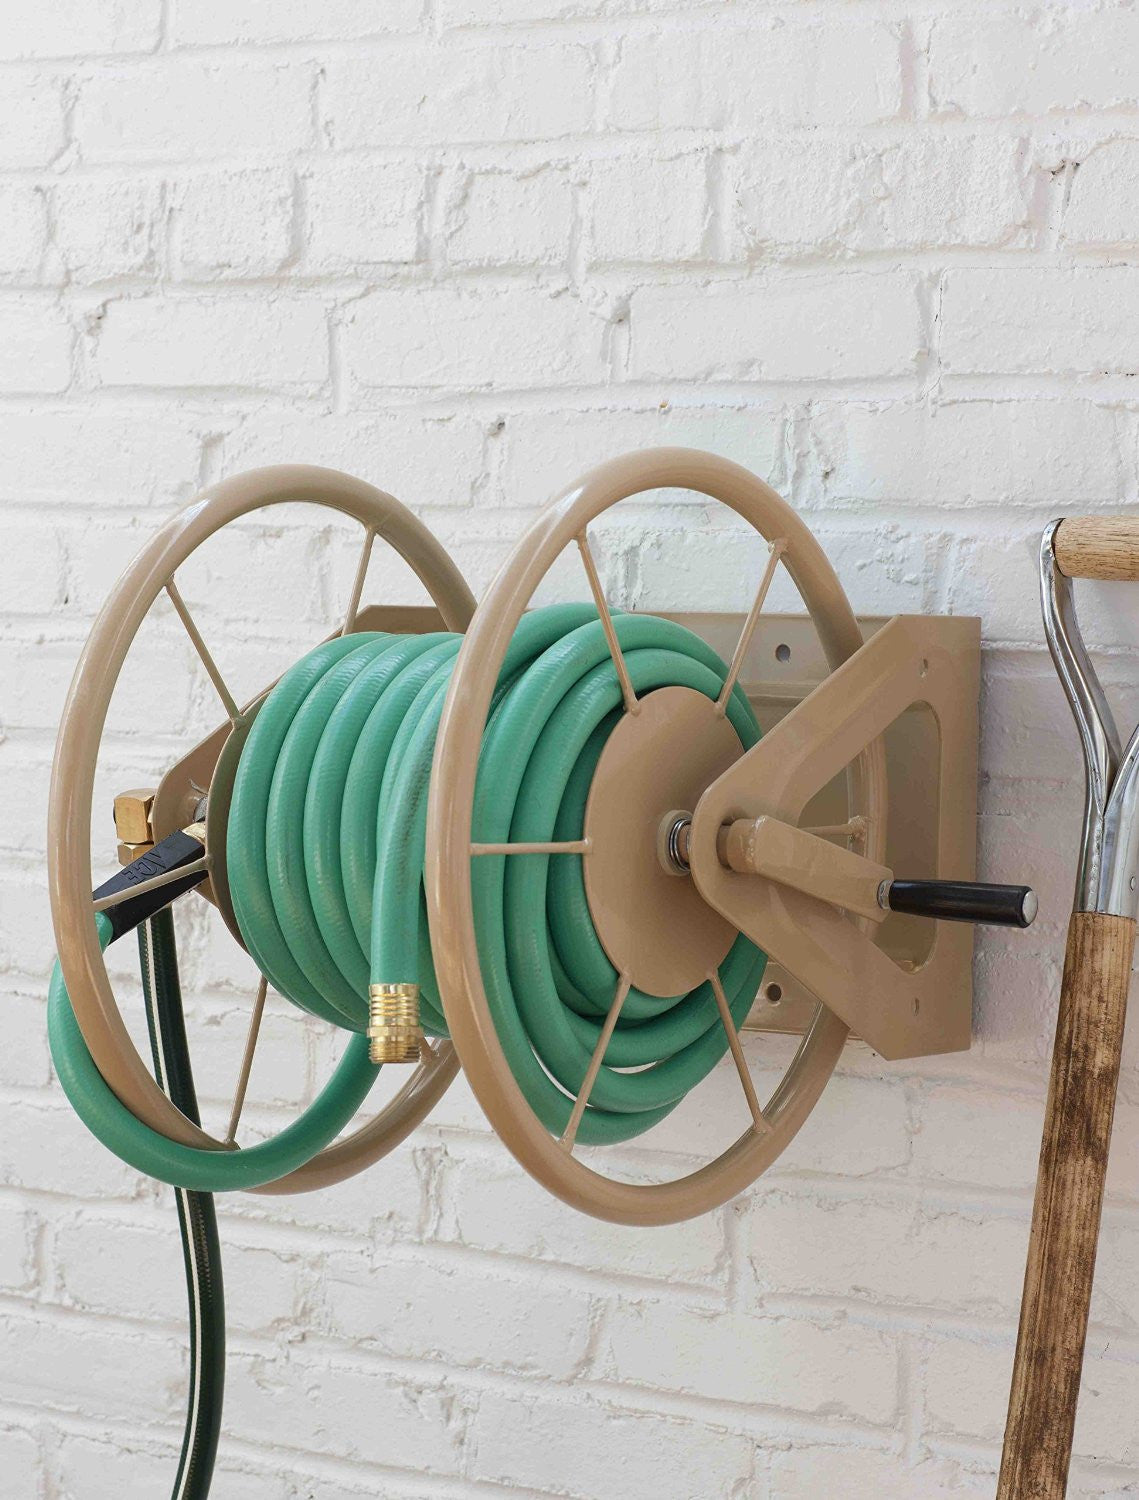 ... Liberty 703 2 200 Ft 3 In 1 Wall Mount Retractable Garden Hose Reel ...